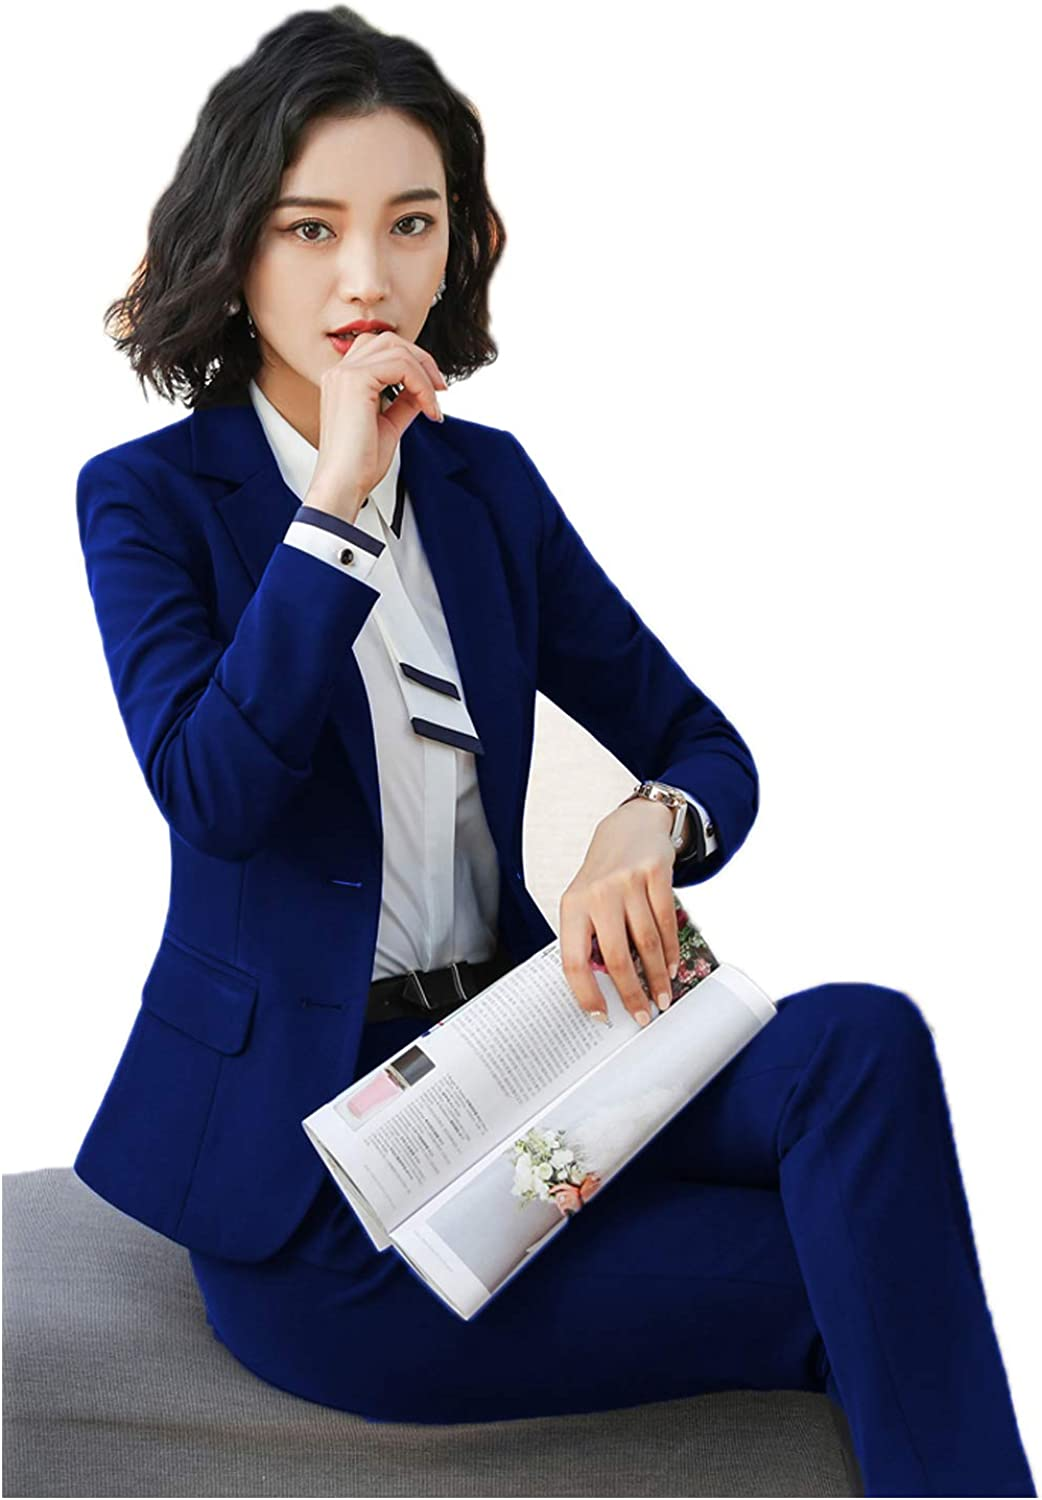 JYDress Women's Stylish Office Pants Suit Elegant Formal Set